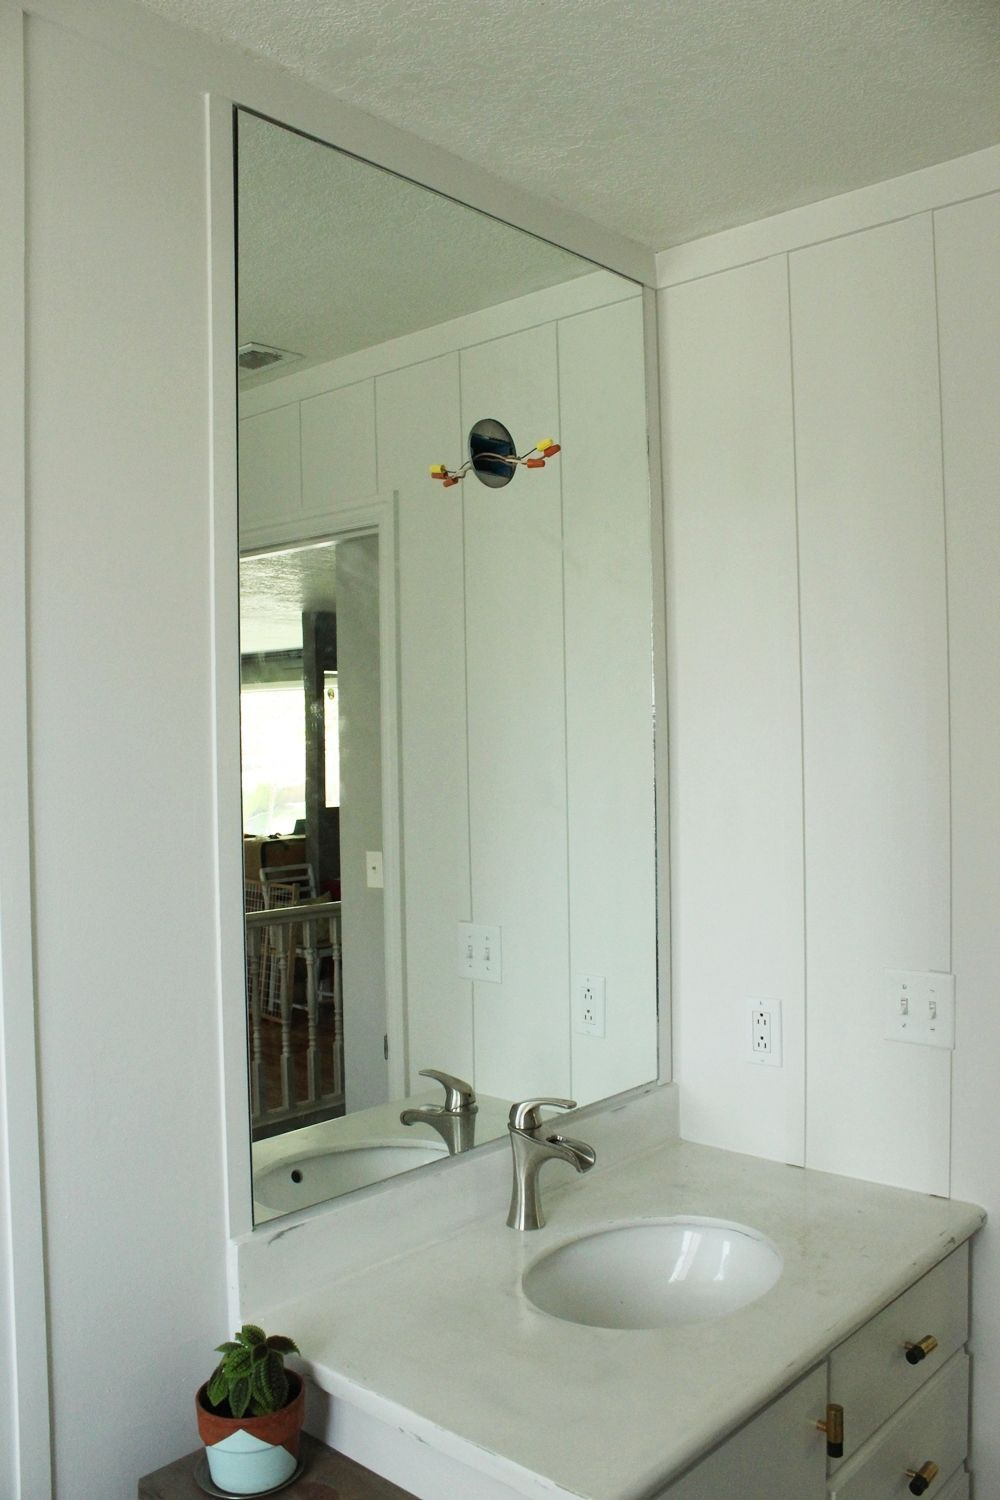 mirror for bathroom. DIY Prof Install Mirror for Bathroom How to Professionally a